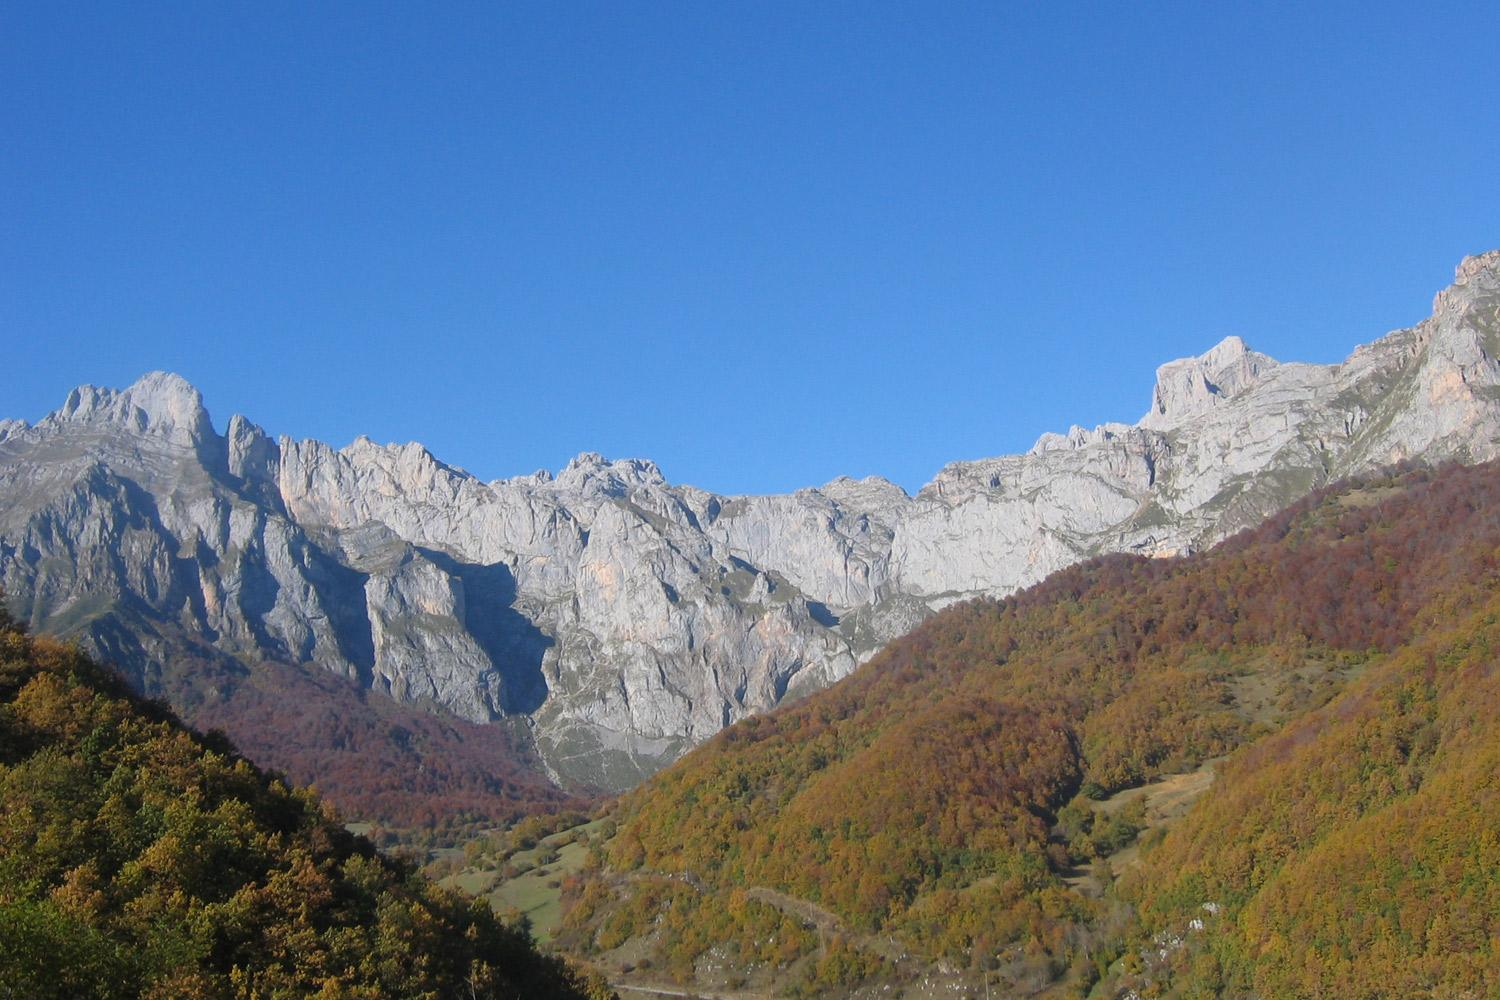 Self-guided hiking vacation in the Picos de Europa